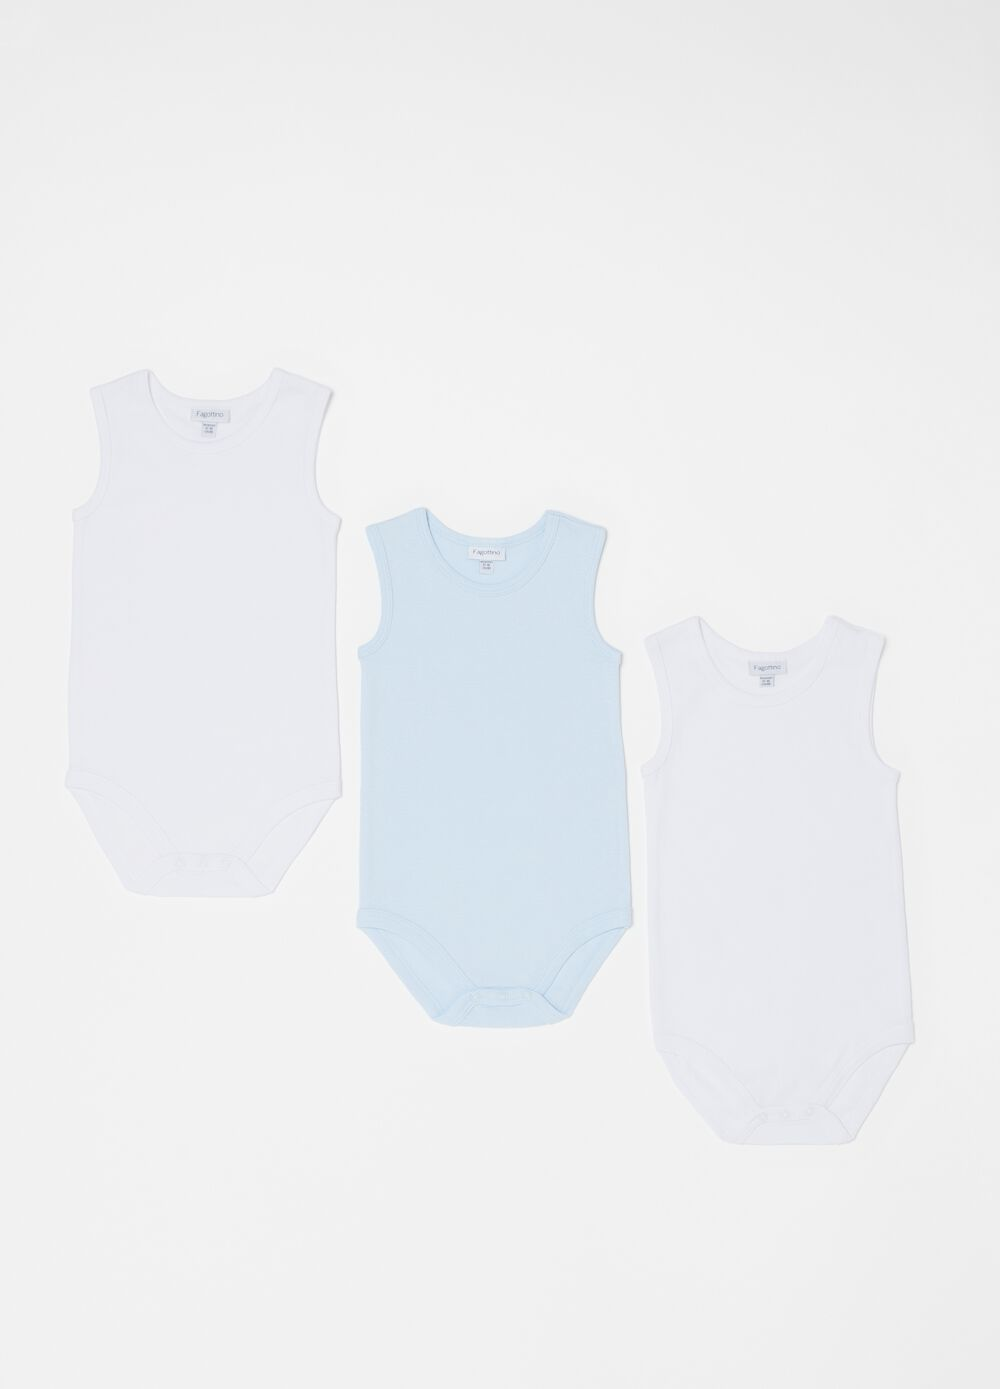 Three-pack of solid colour 100% organic cotton bodysuits